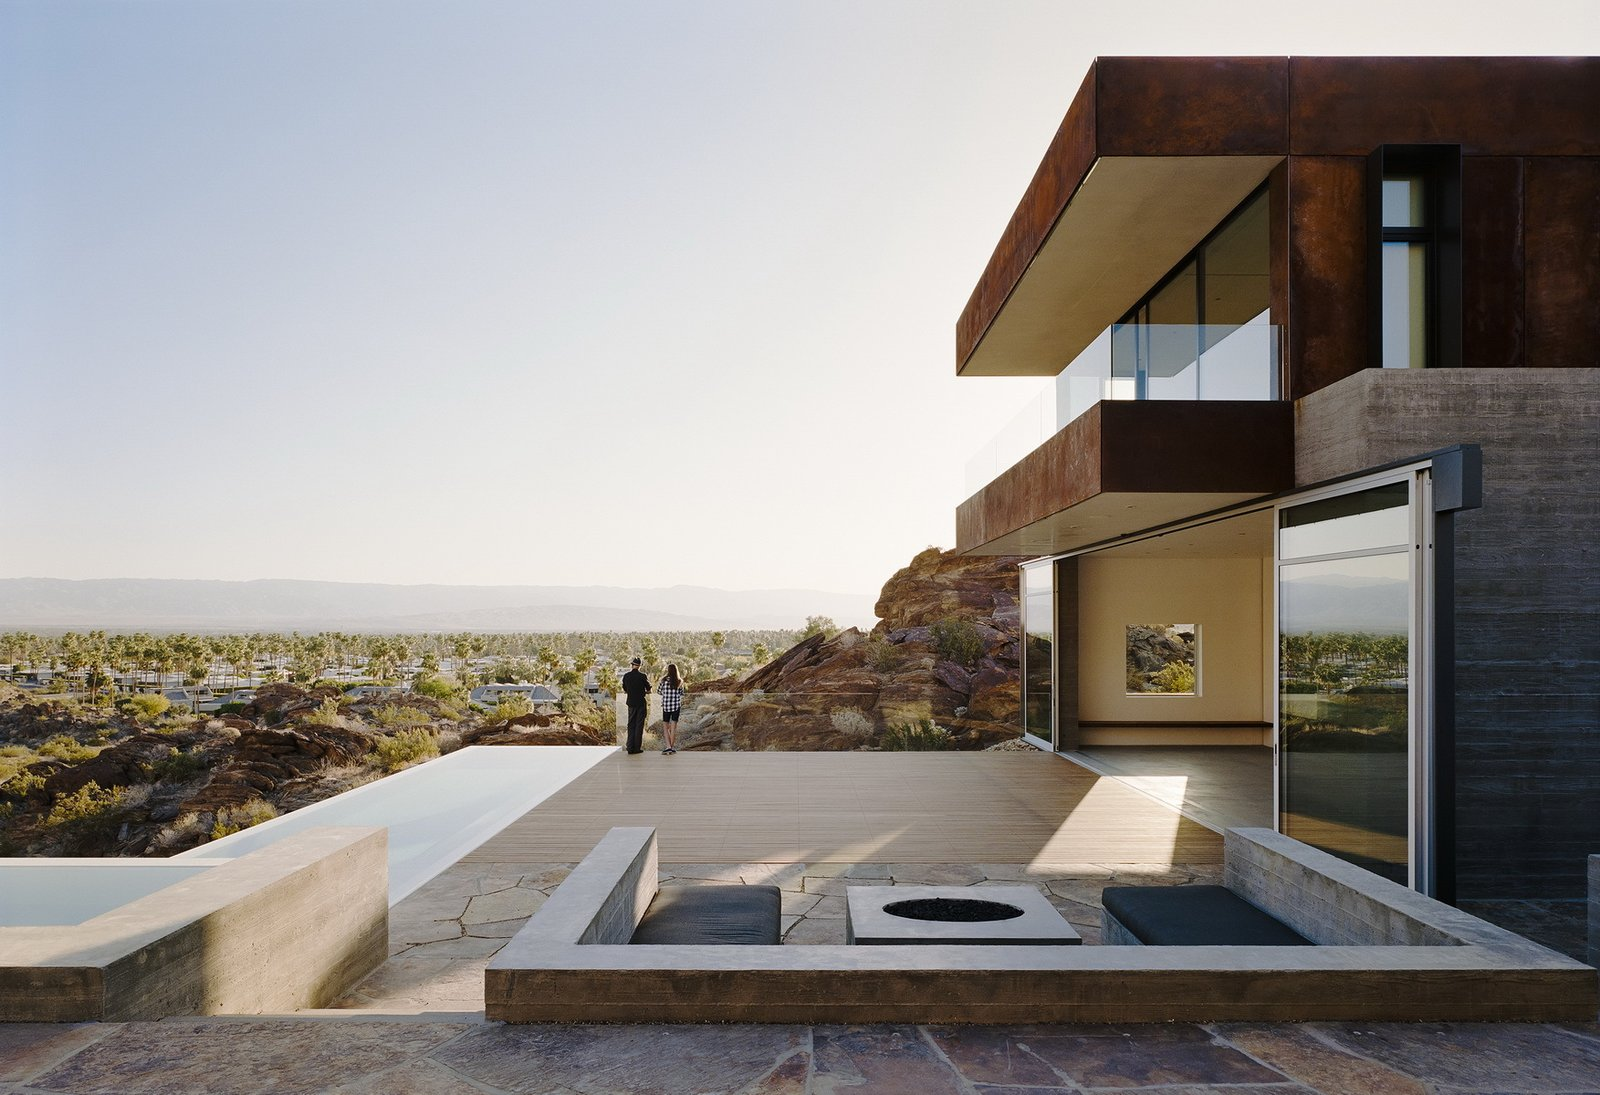 Outdoor, Back Yard, Shrubs, Slope, Boulders, Desert, and Infinity Pools, Tubs, Shower  Ridge Mountain Residence by Ehrlich Yanai Rhee Chaney Architects